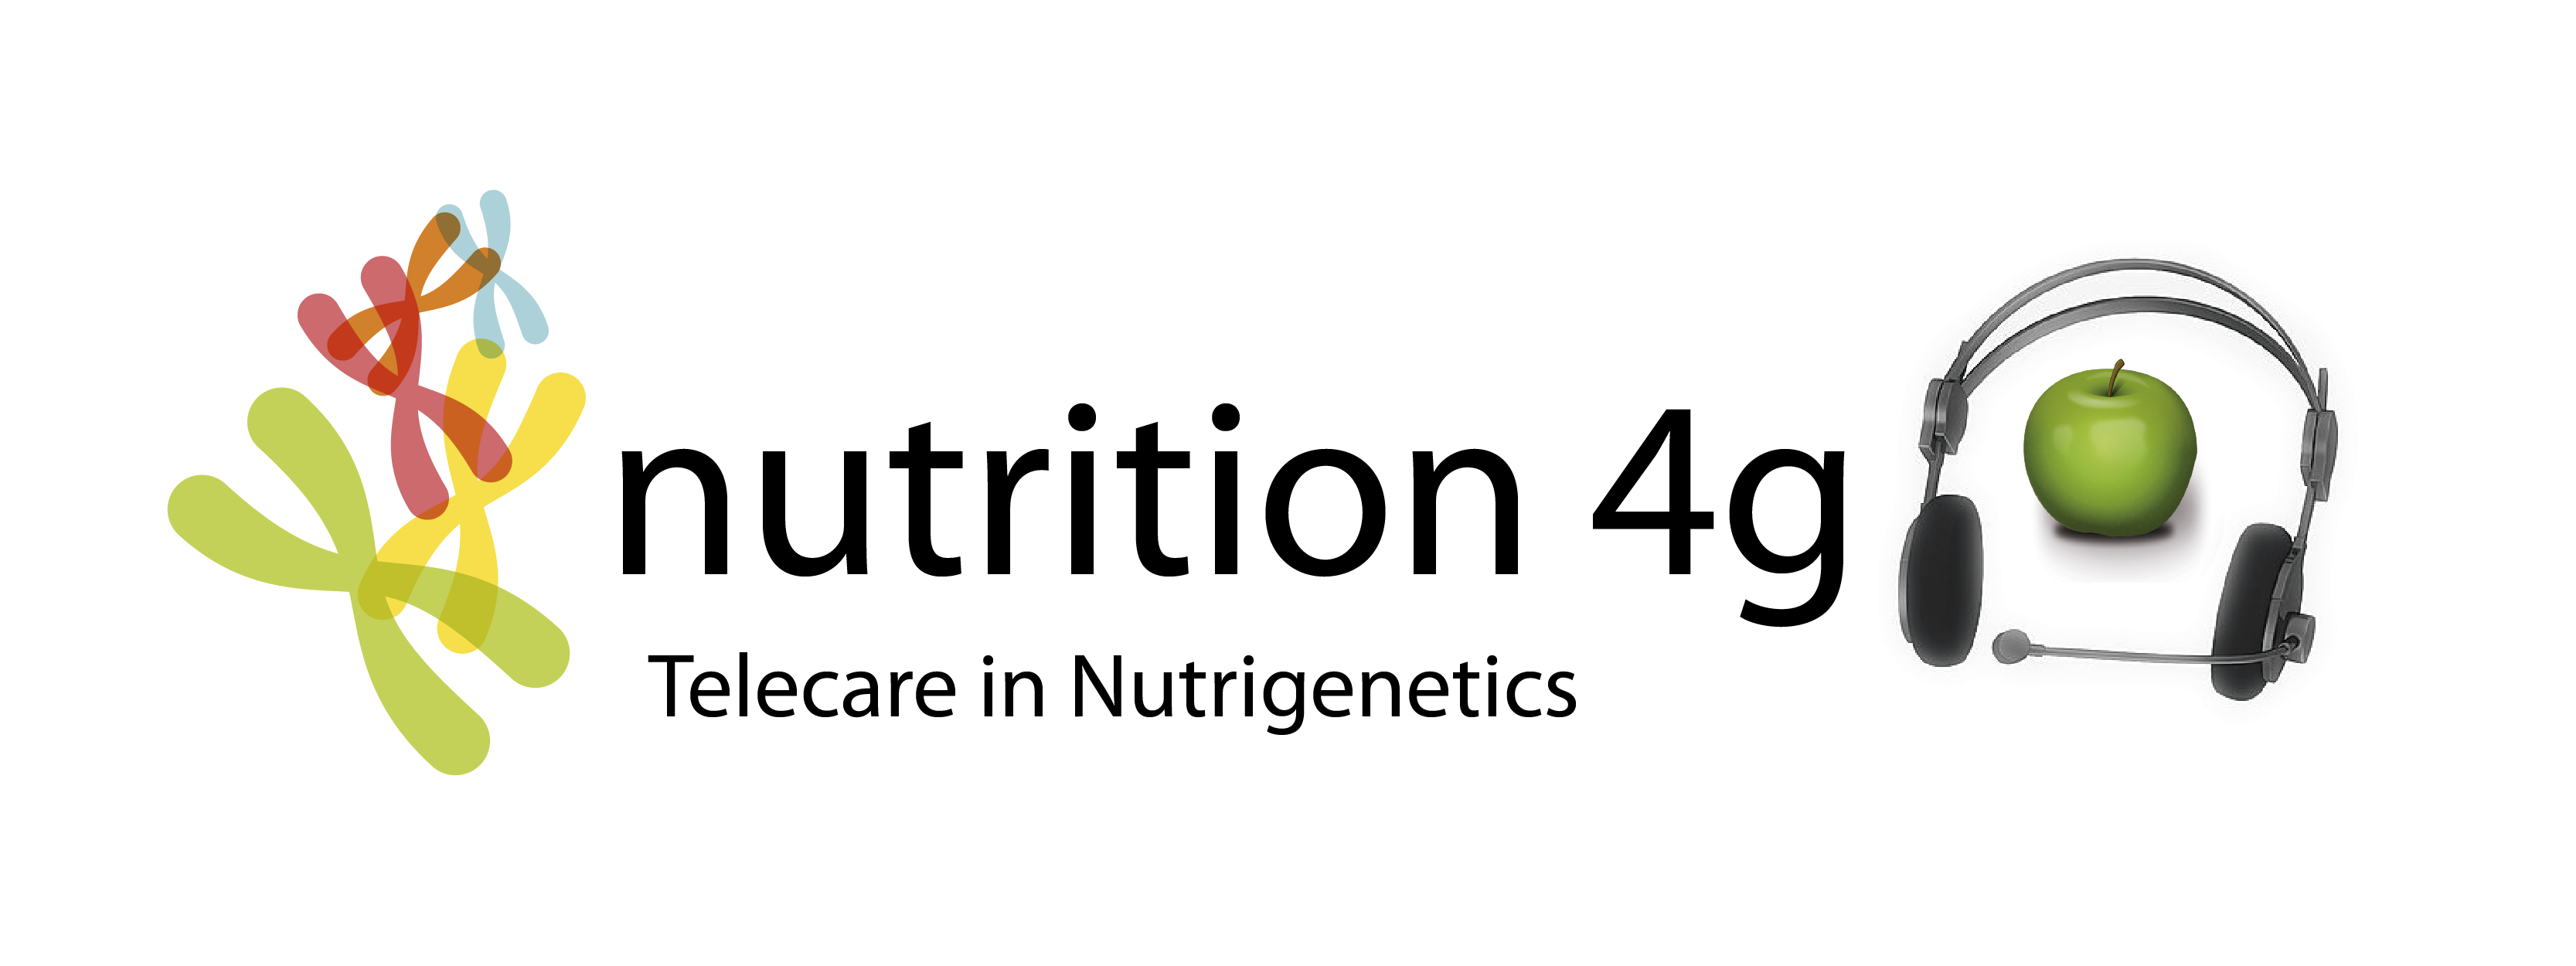 logo nutrition4g head telecare apple 01